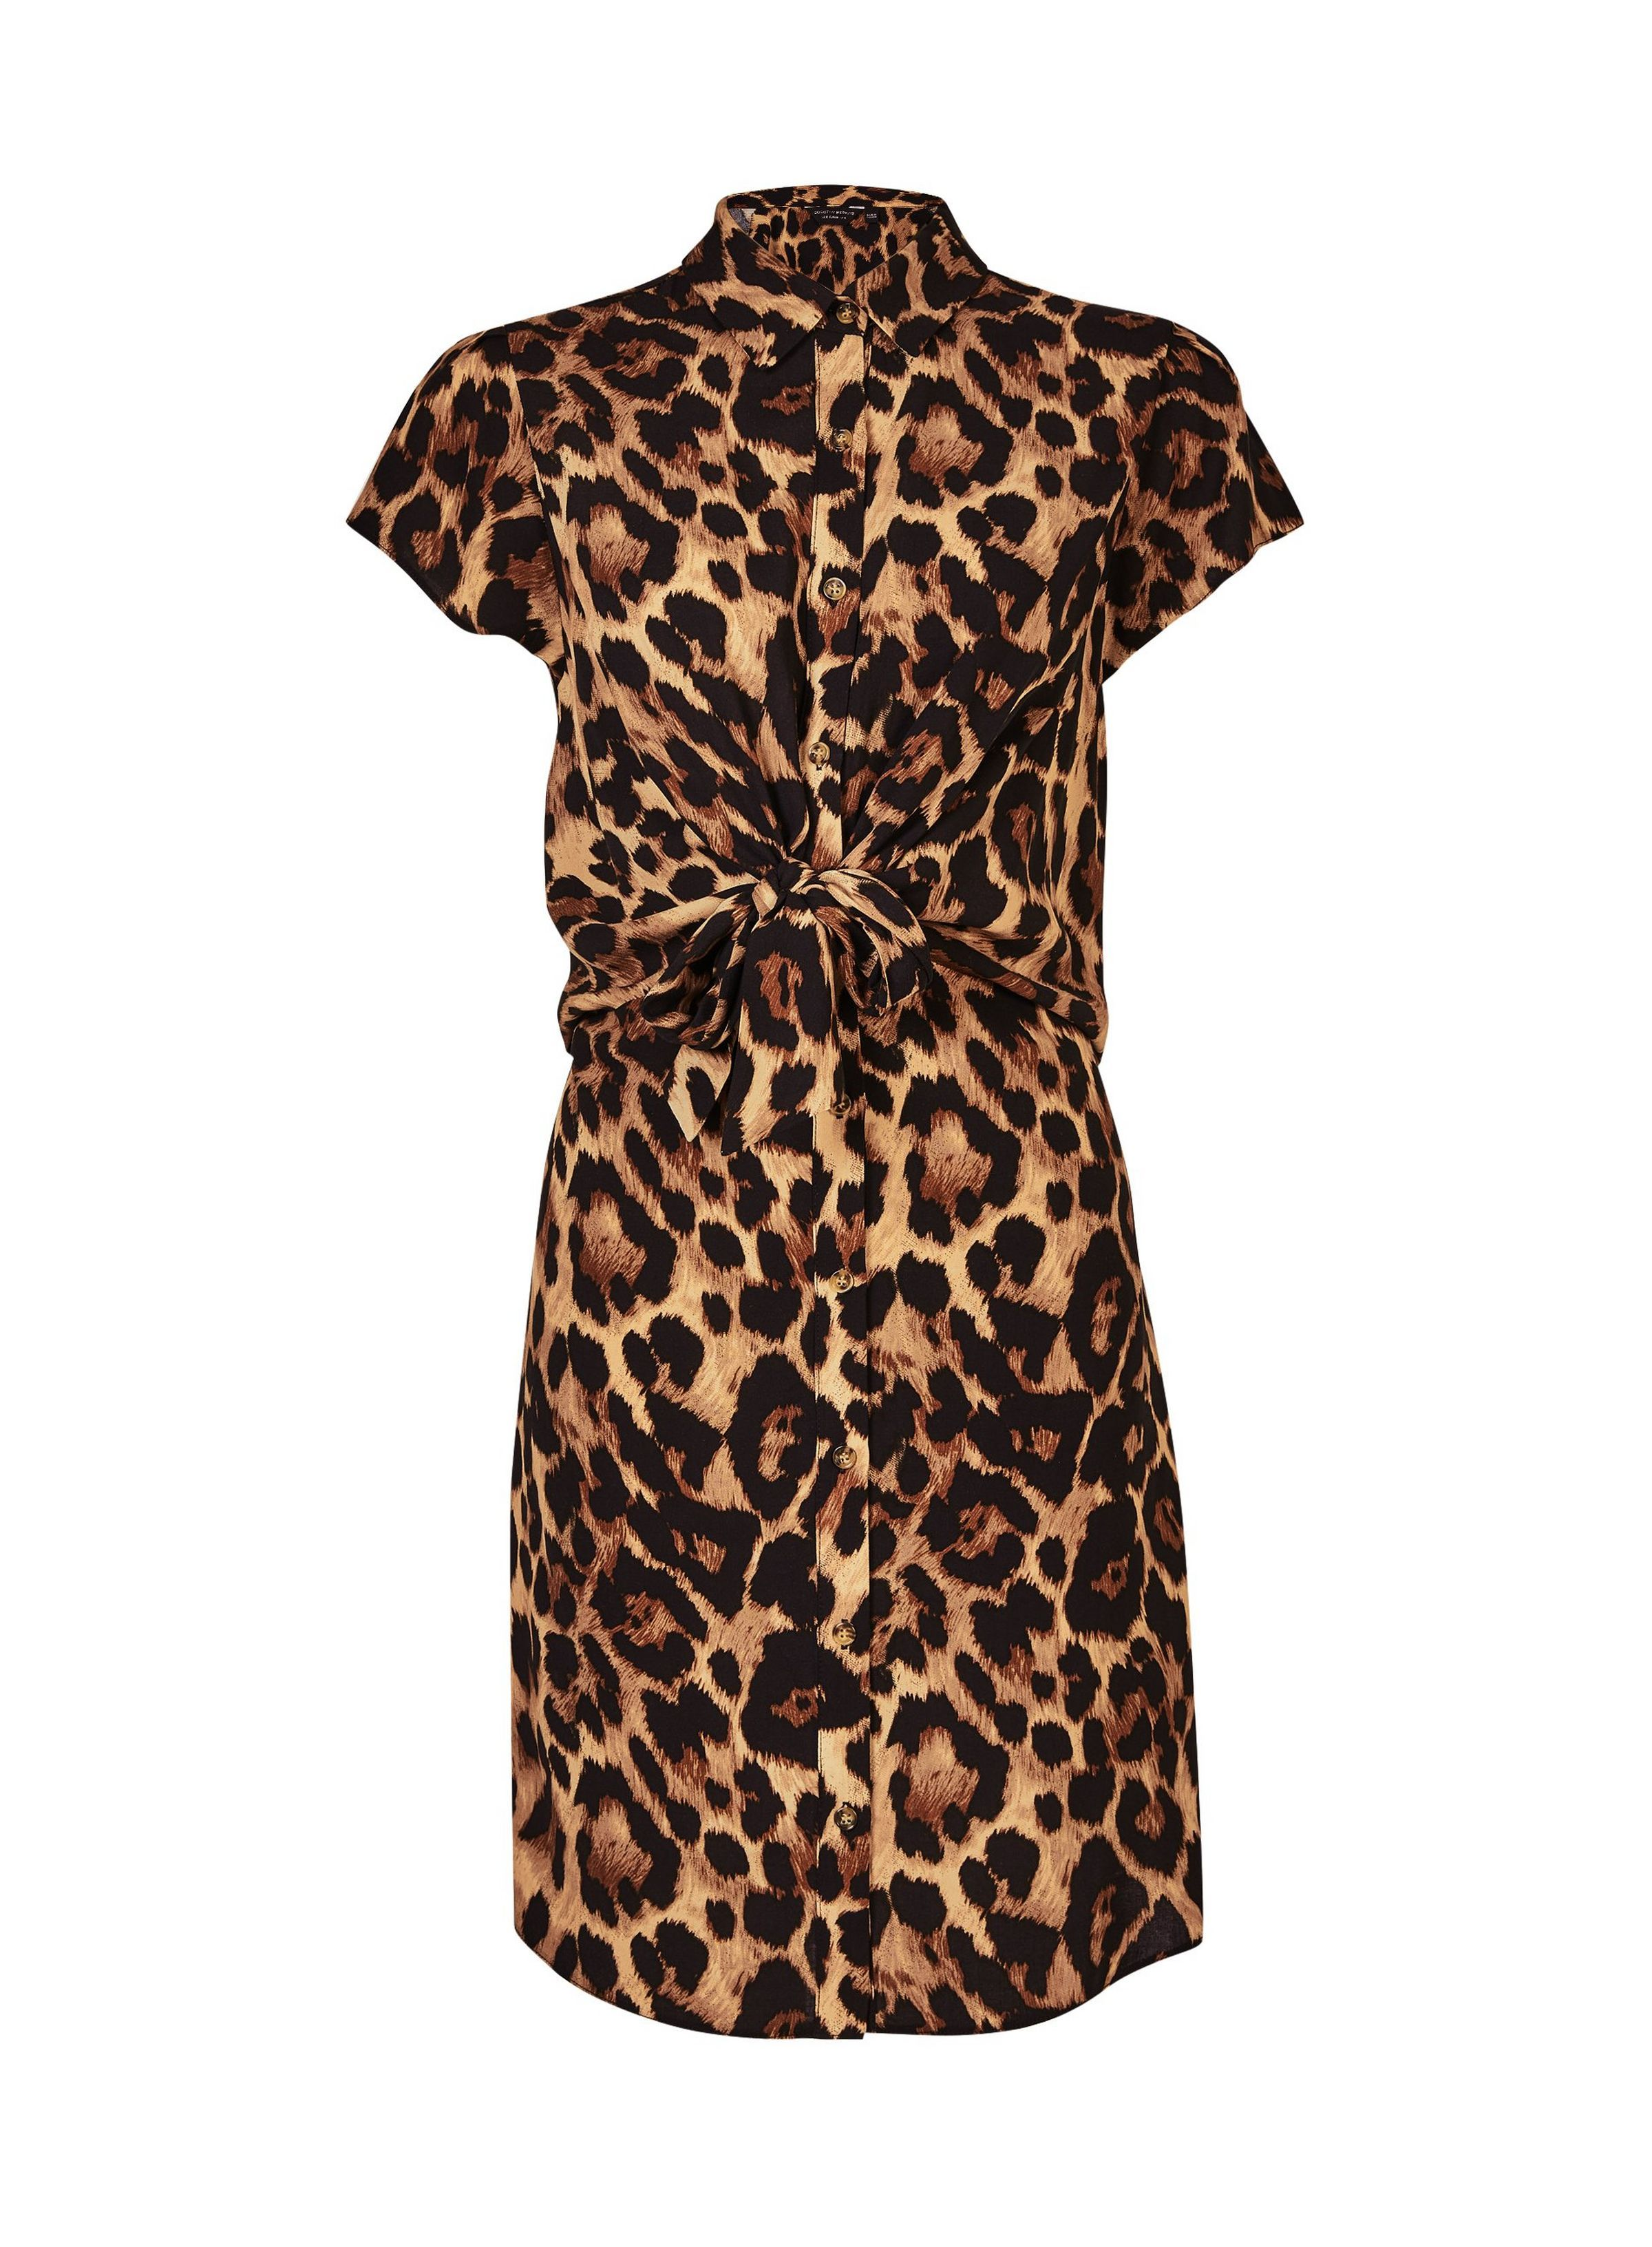 a5a53342b493 Multi Colour Animal Print Knot Shirt Dress in 2019   Holiday ...